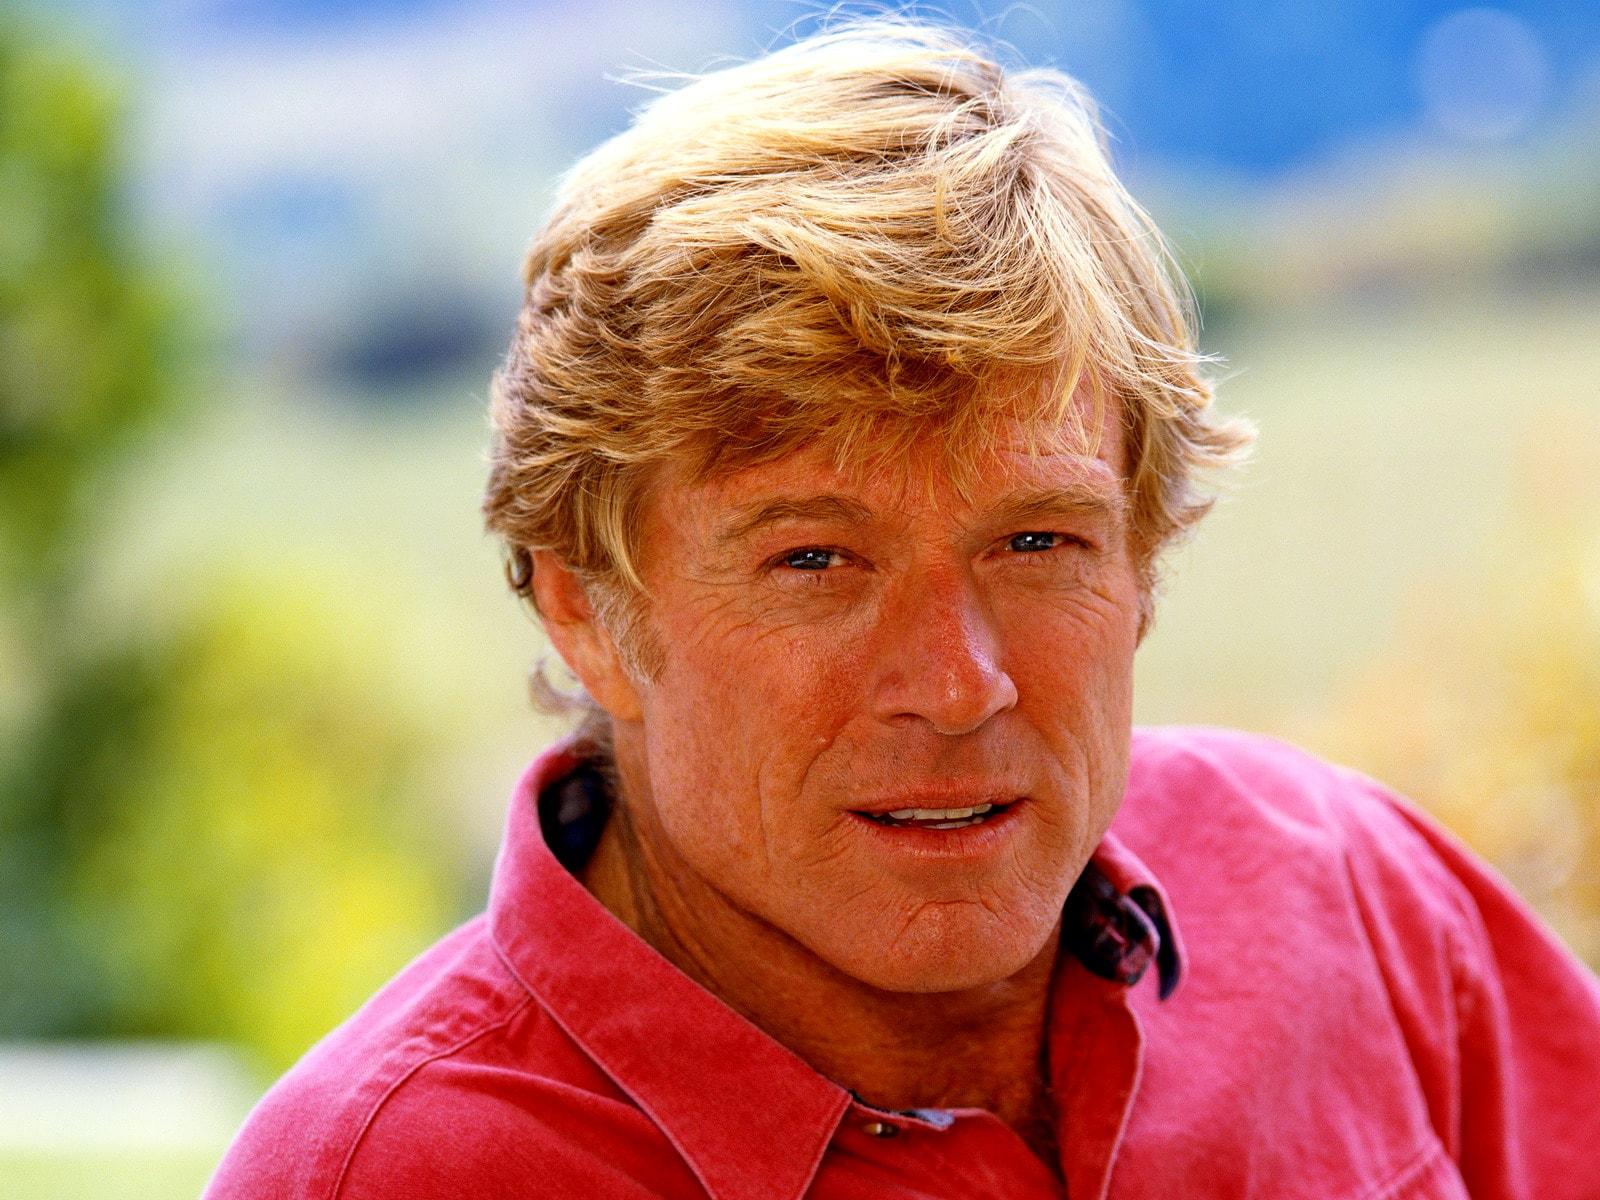 Robert Redford Wallpapers hd